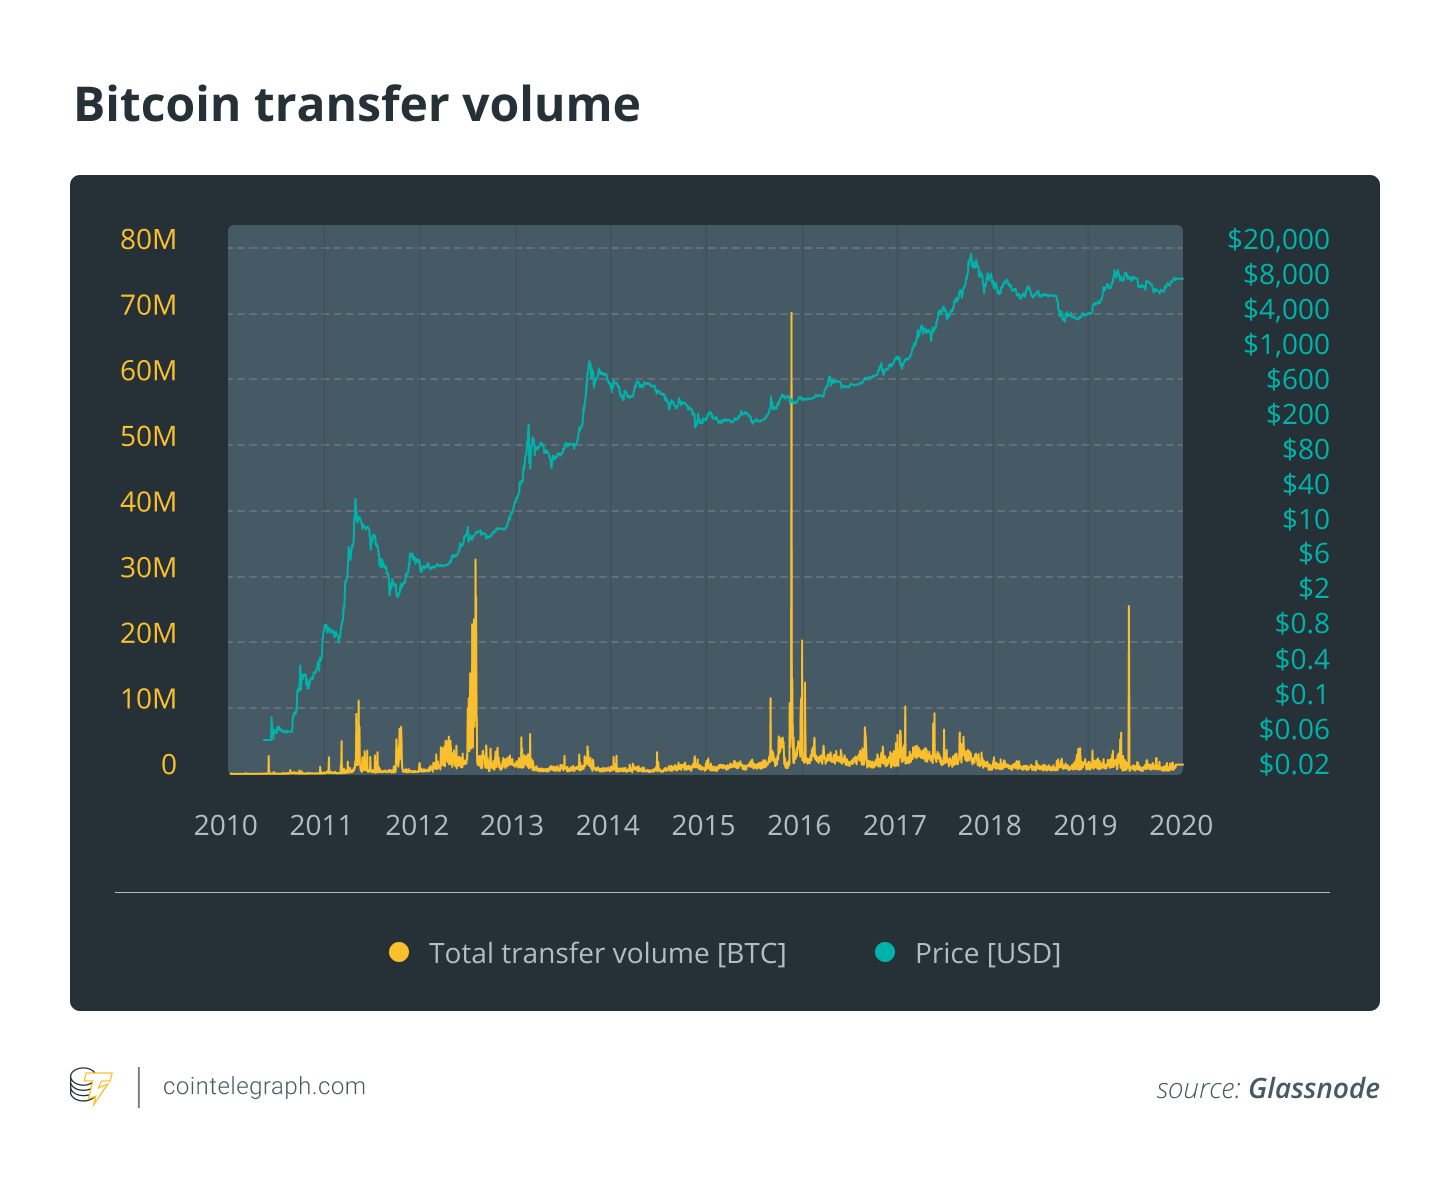 Bitcoin transfer volume